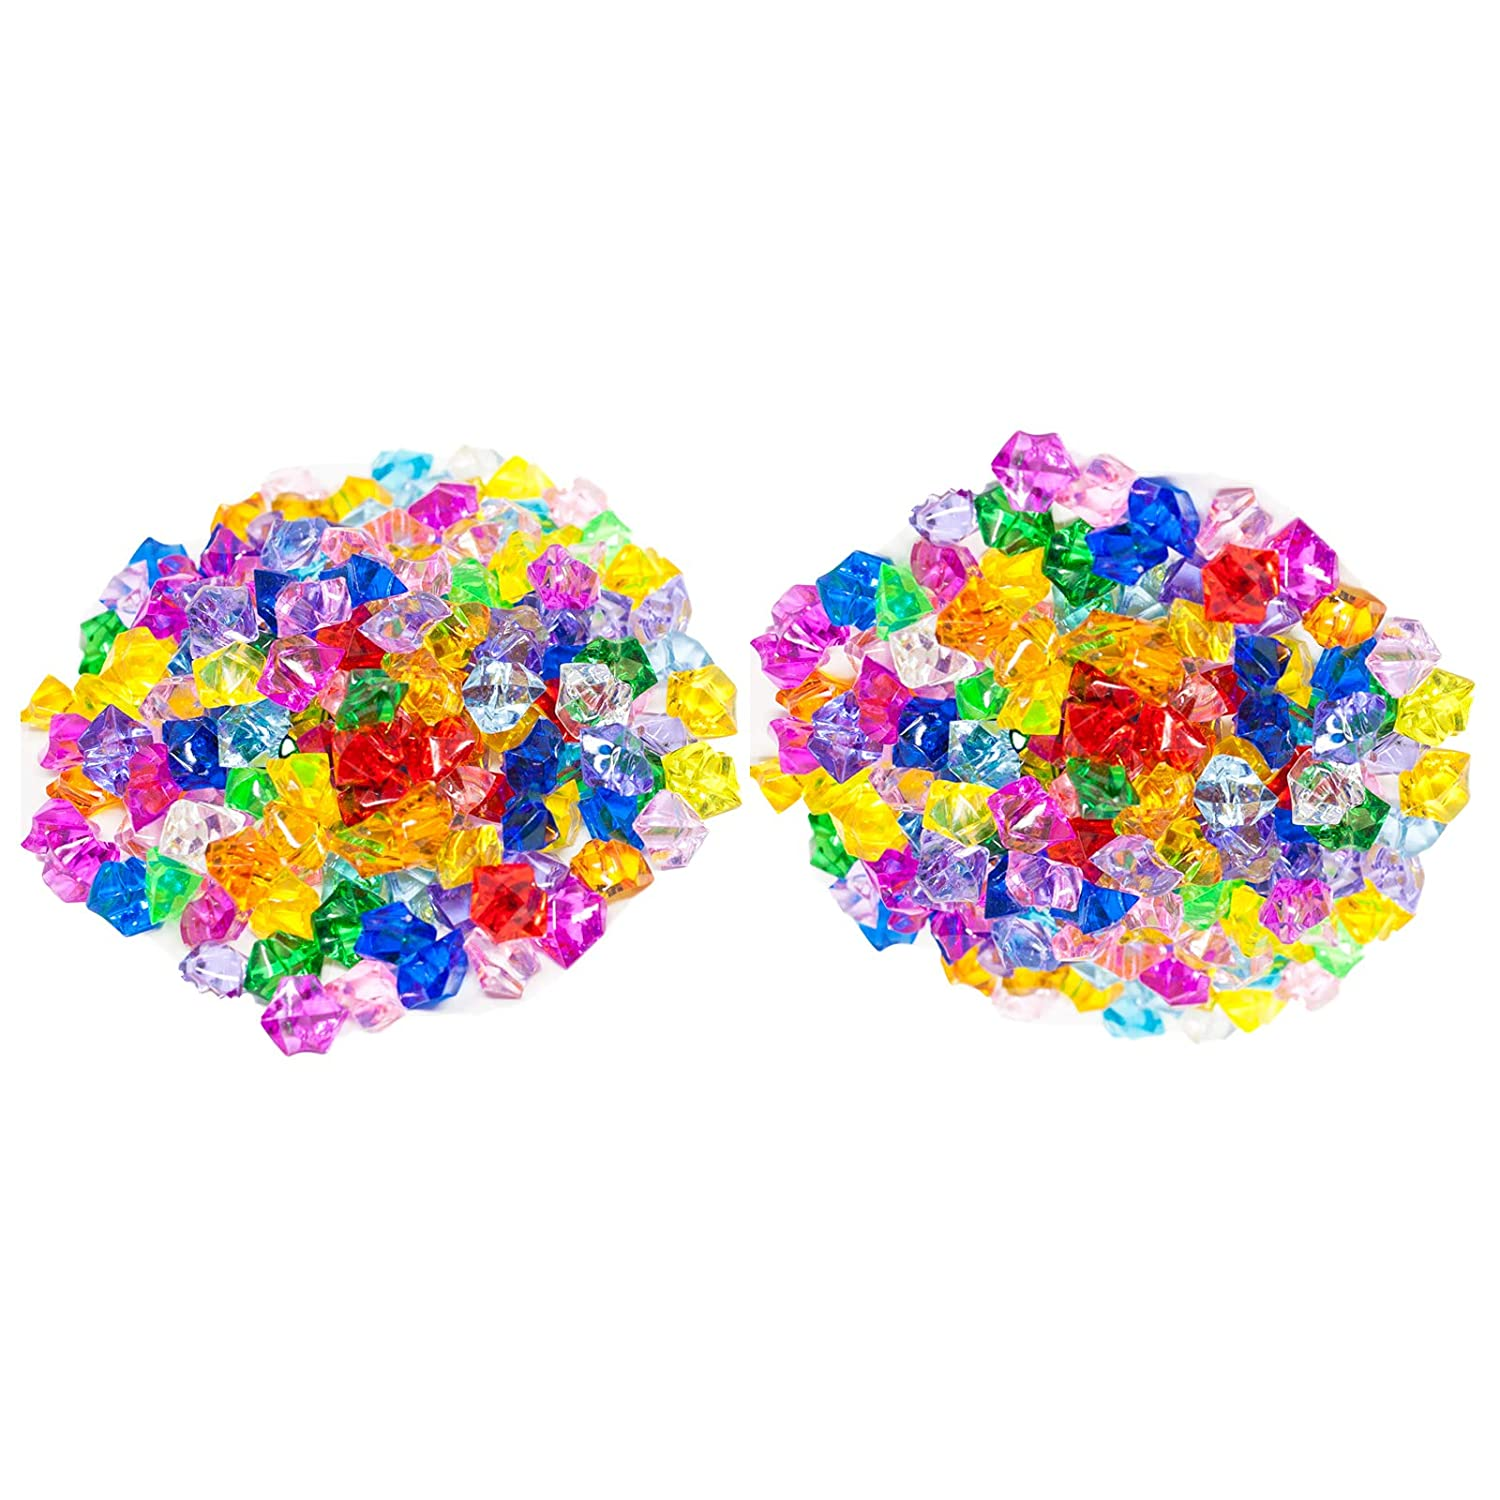 Huji Acrylic Pirate Bulk Colored Jewels Gems Faux Diamond Crystals Treasure Gems for Tables Decorations, Vase Fillers,Wedding or Birthday Decoration, Party Favors for Arts and Crafts (1, Assorted) HJ345